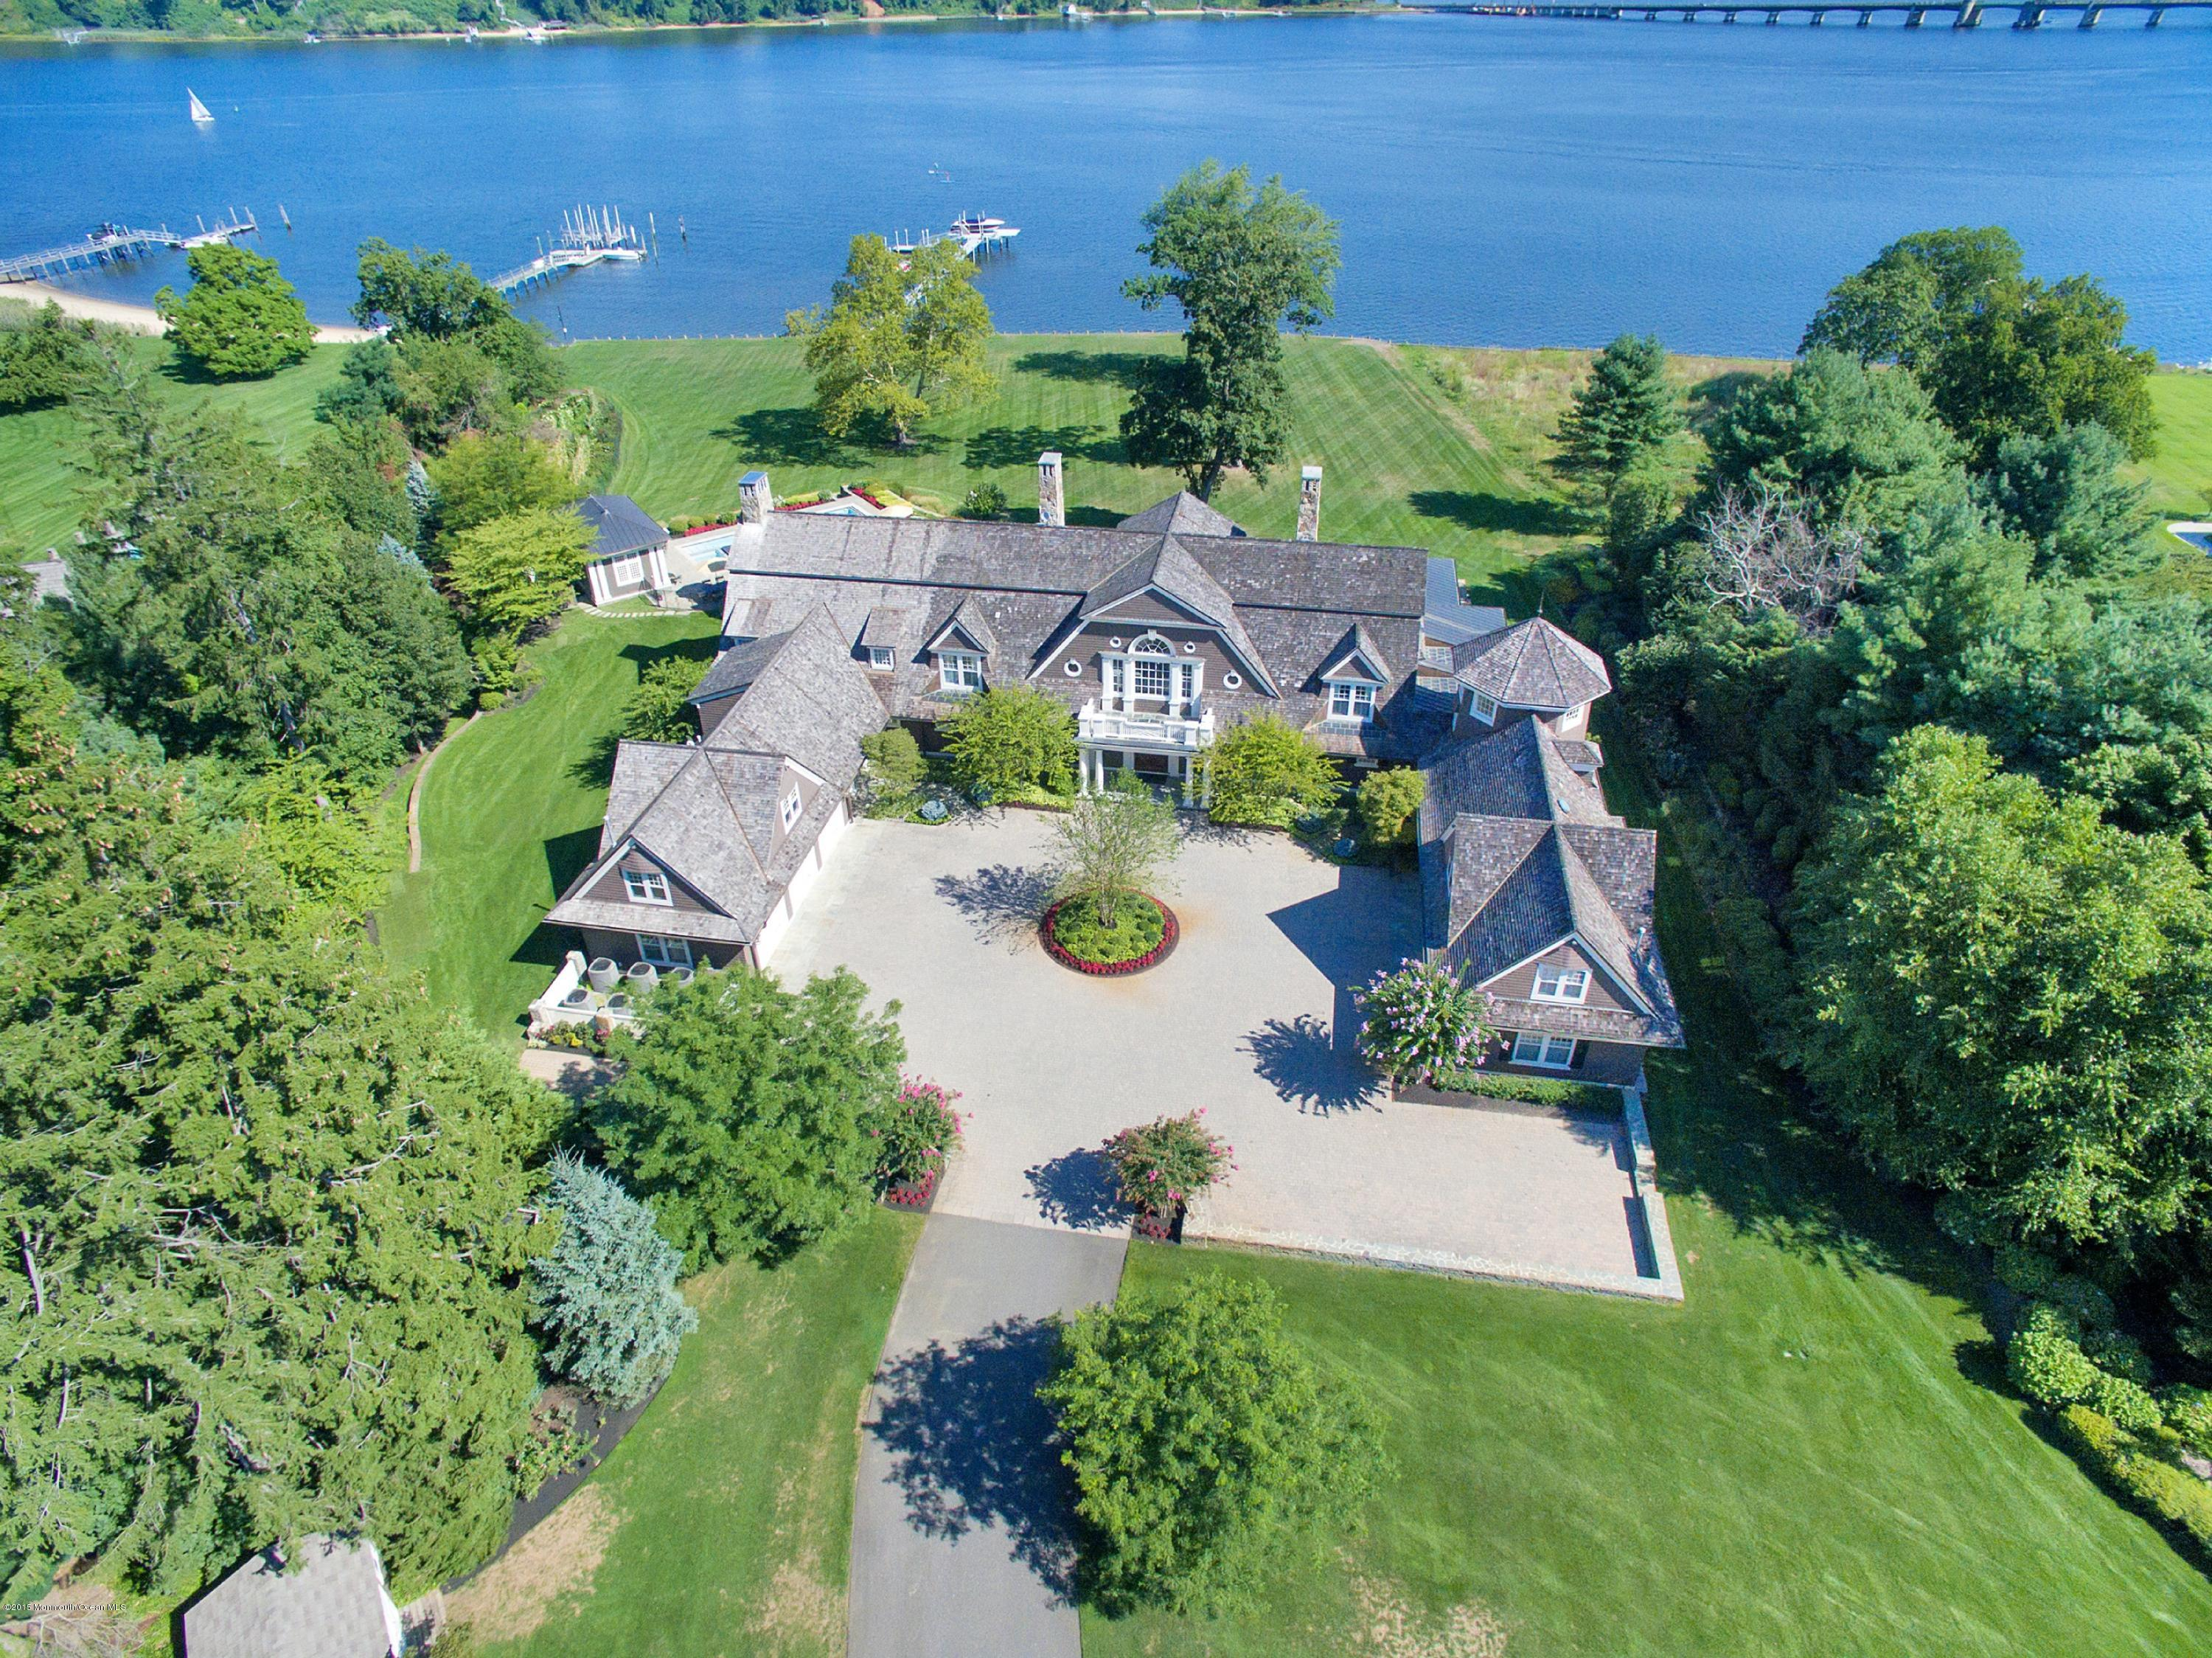 74 W RIVER ROAD, RUMSON, NJ 07760